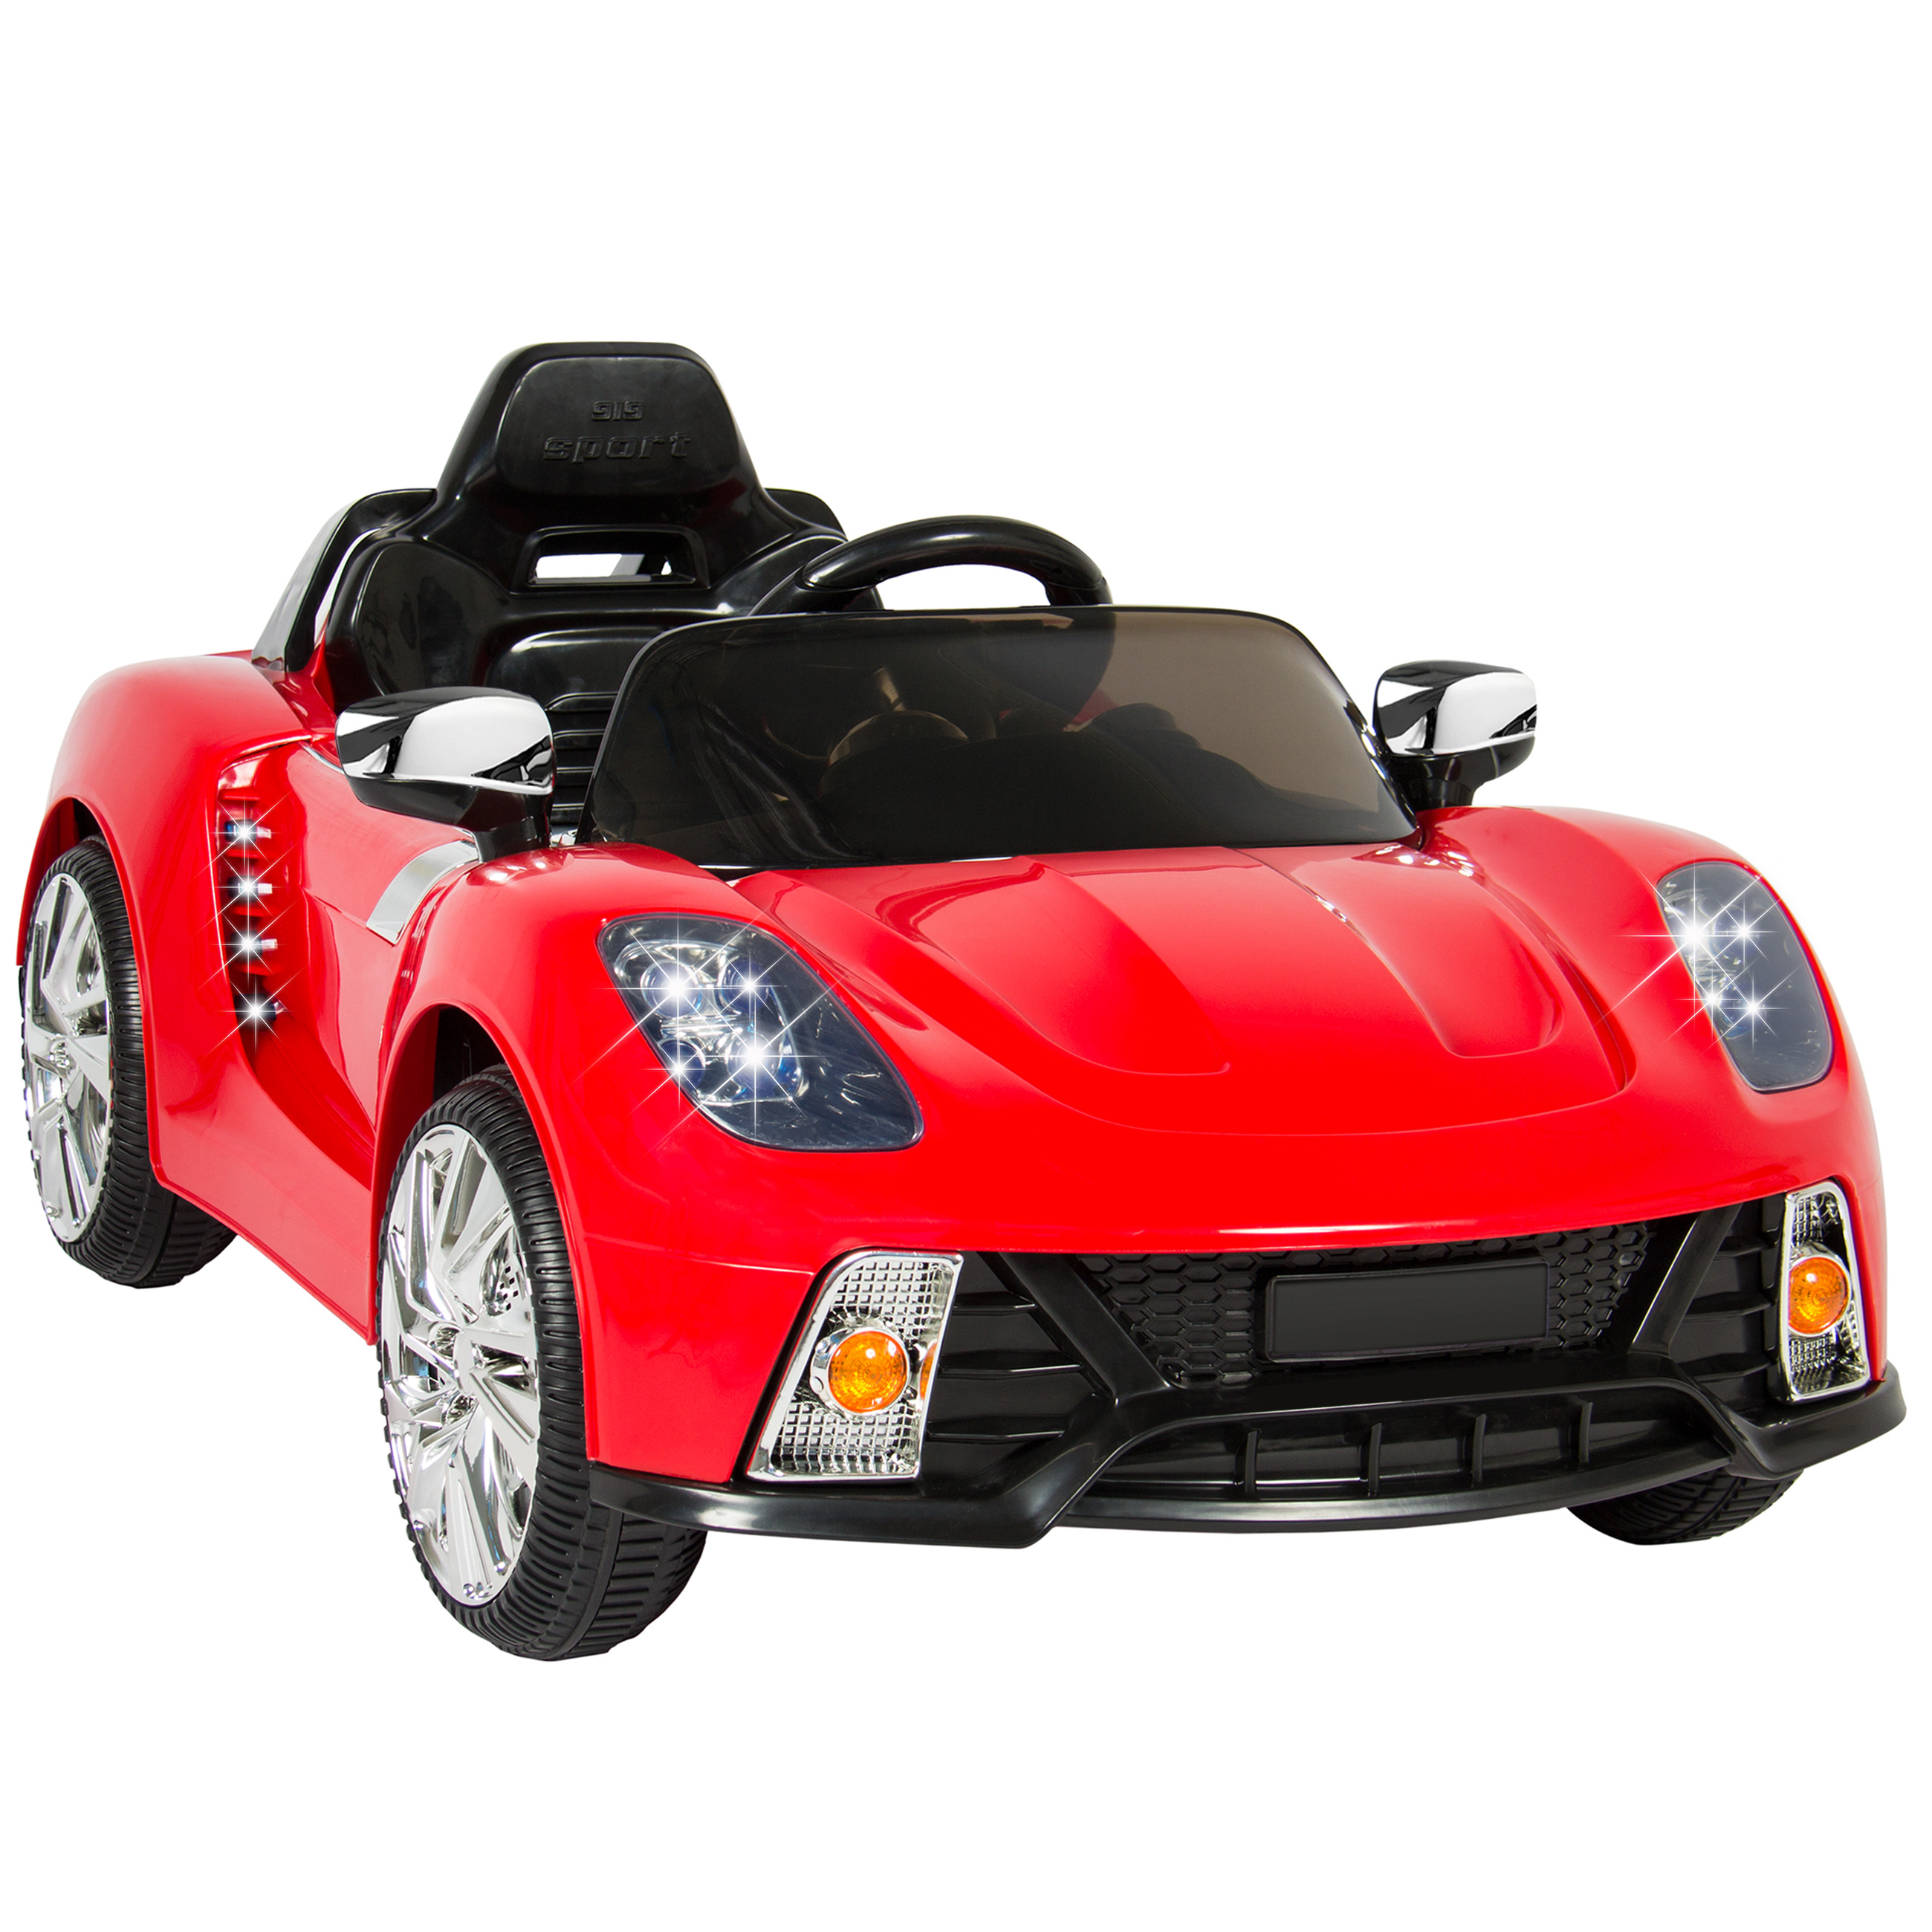 Best Choice Products 12V Kids Battery Powered Remote Control Electric RC Ride-On Car w/ MP3 and AUX - Red